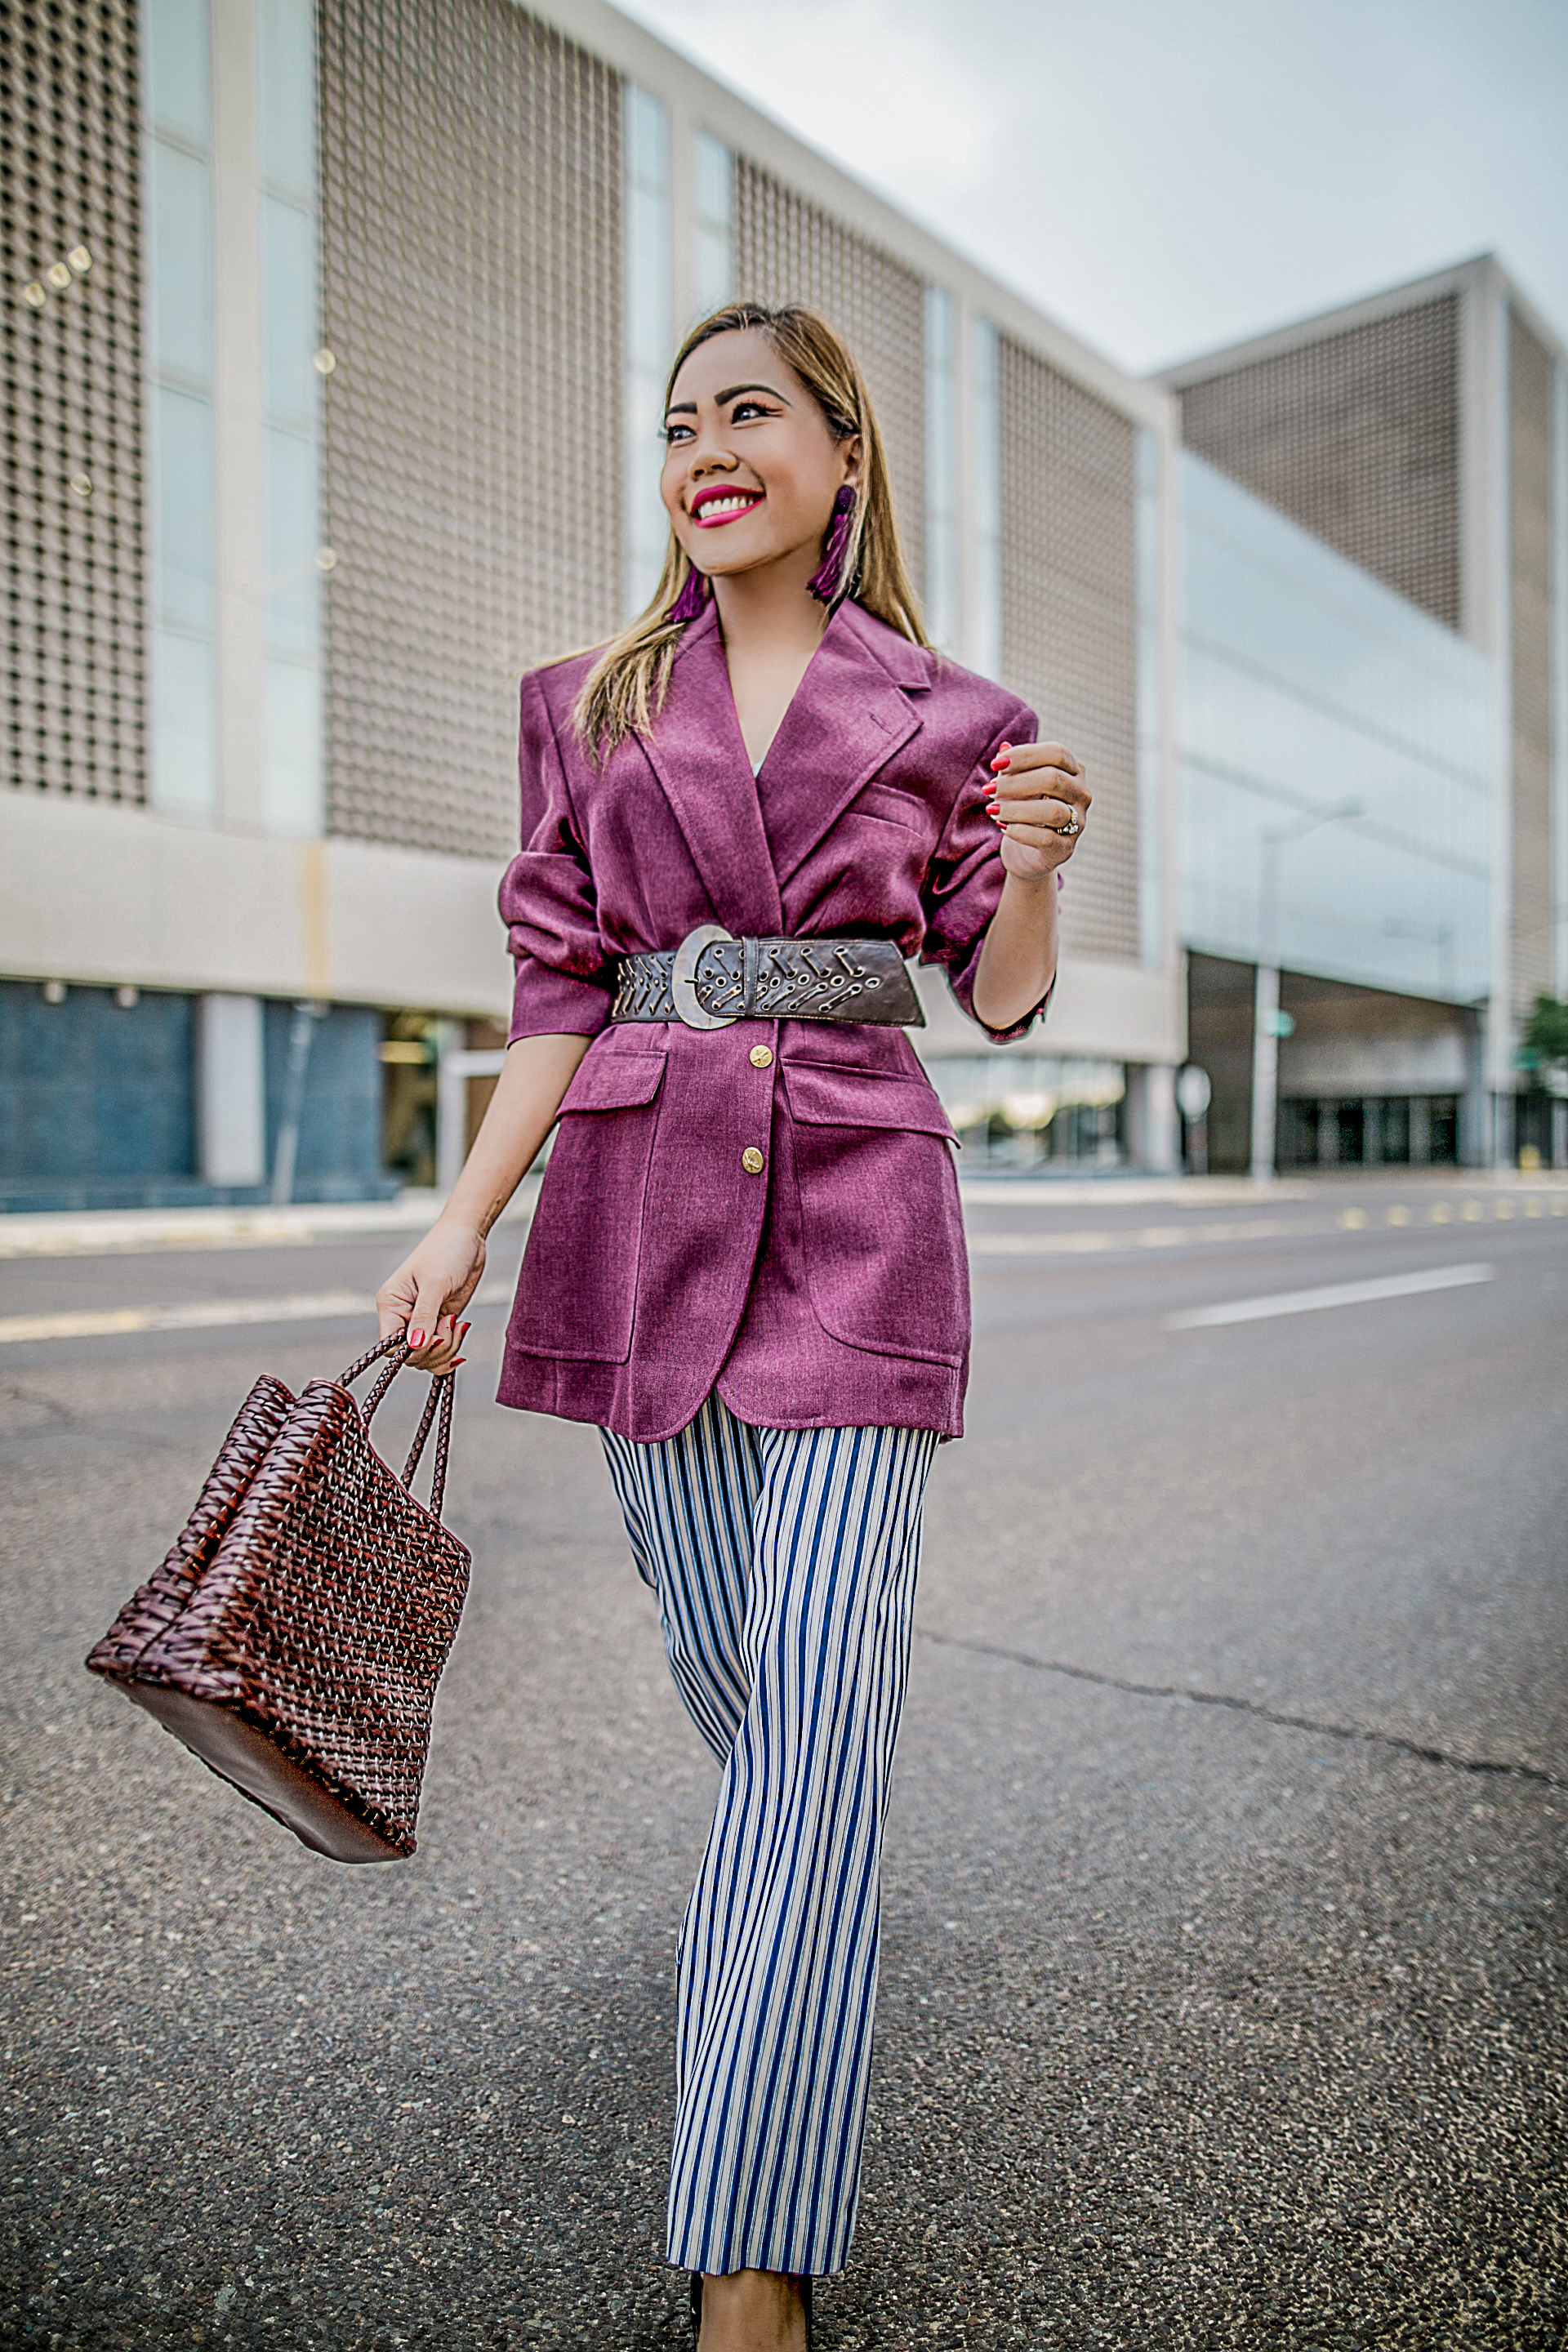 WOOL SUIT – THE TREND PIECE OF THIS FALL SEASON